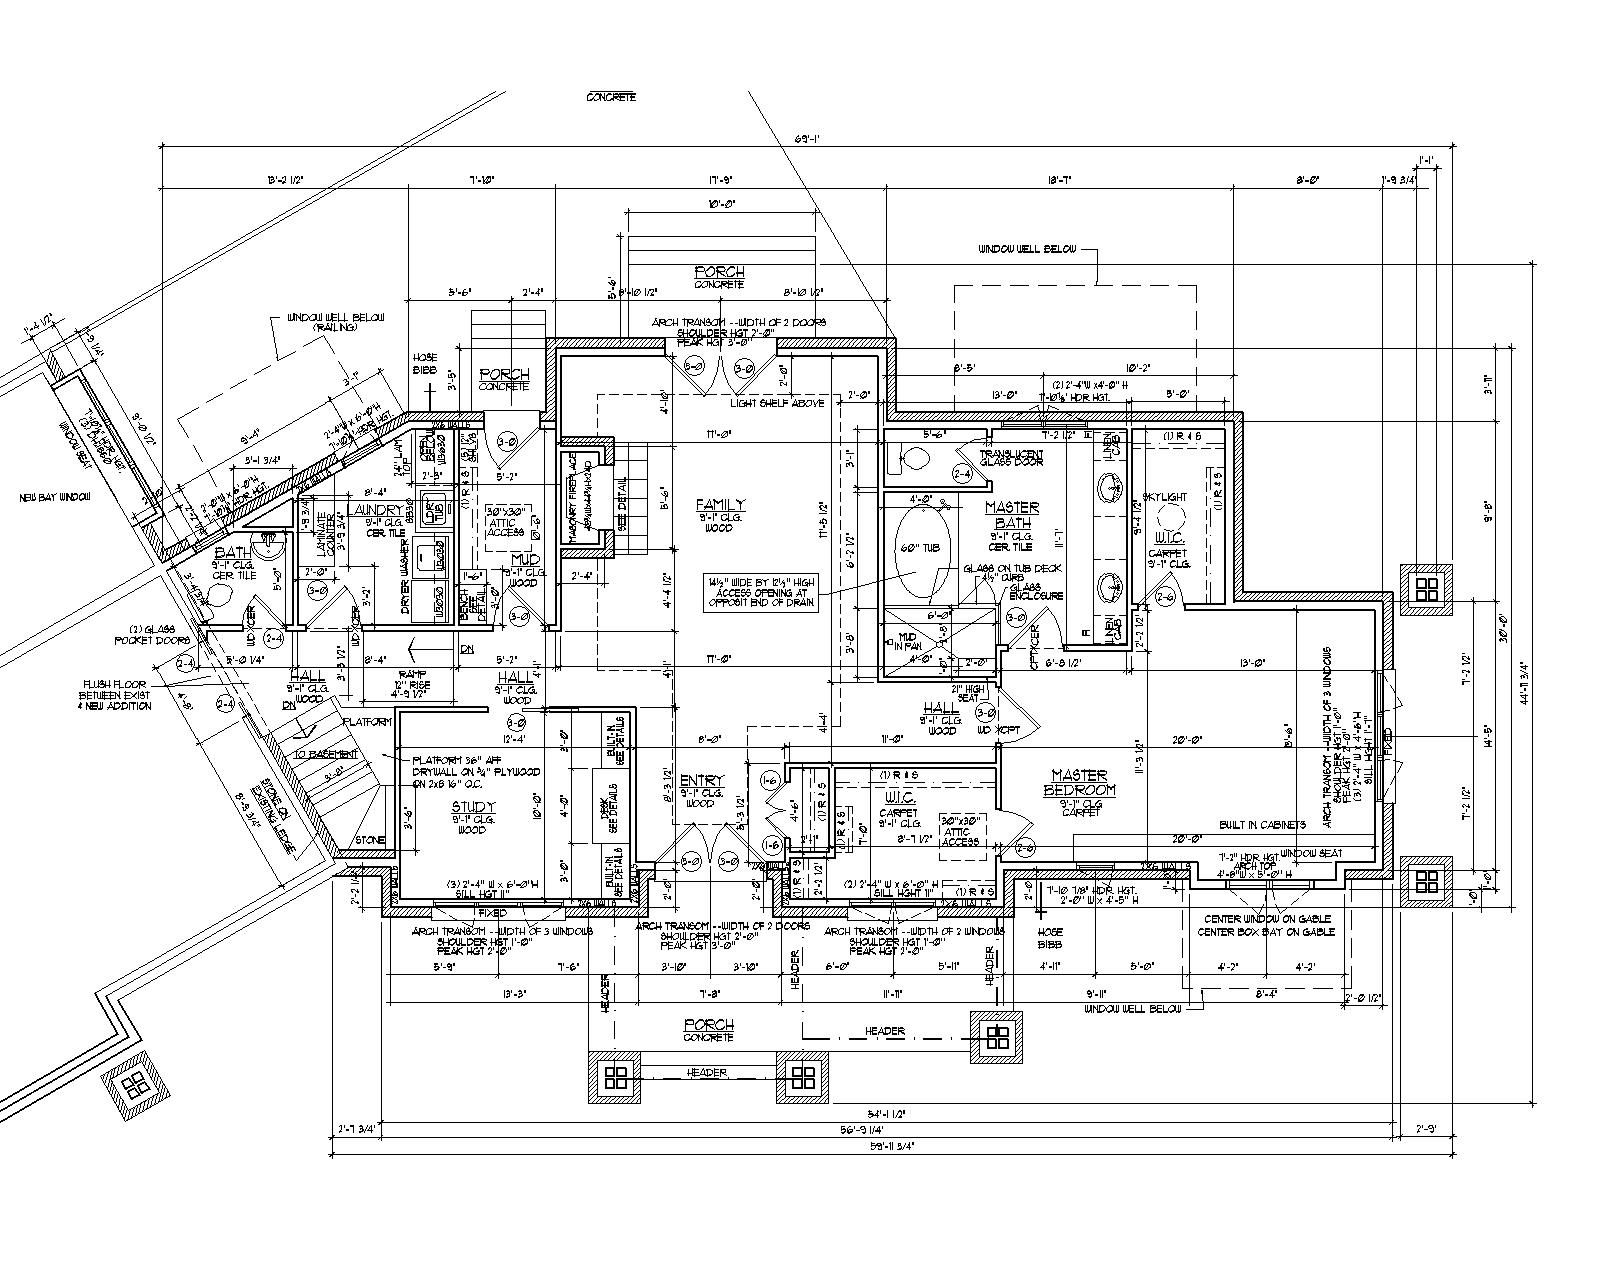 2d autocad house plans residential building drawings cad Blueprints of houses to build